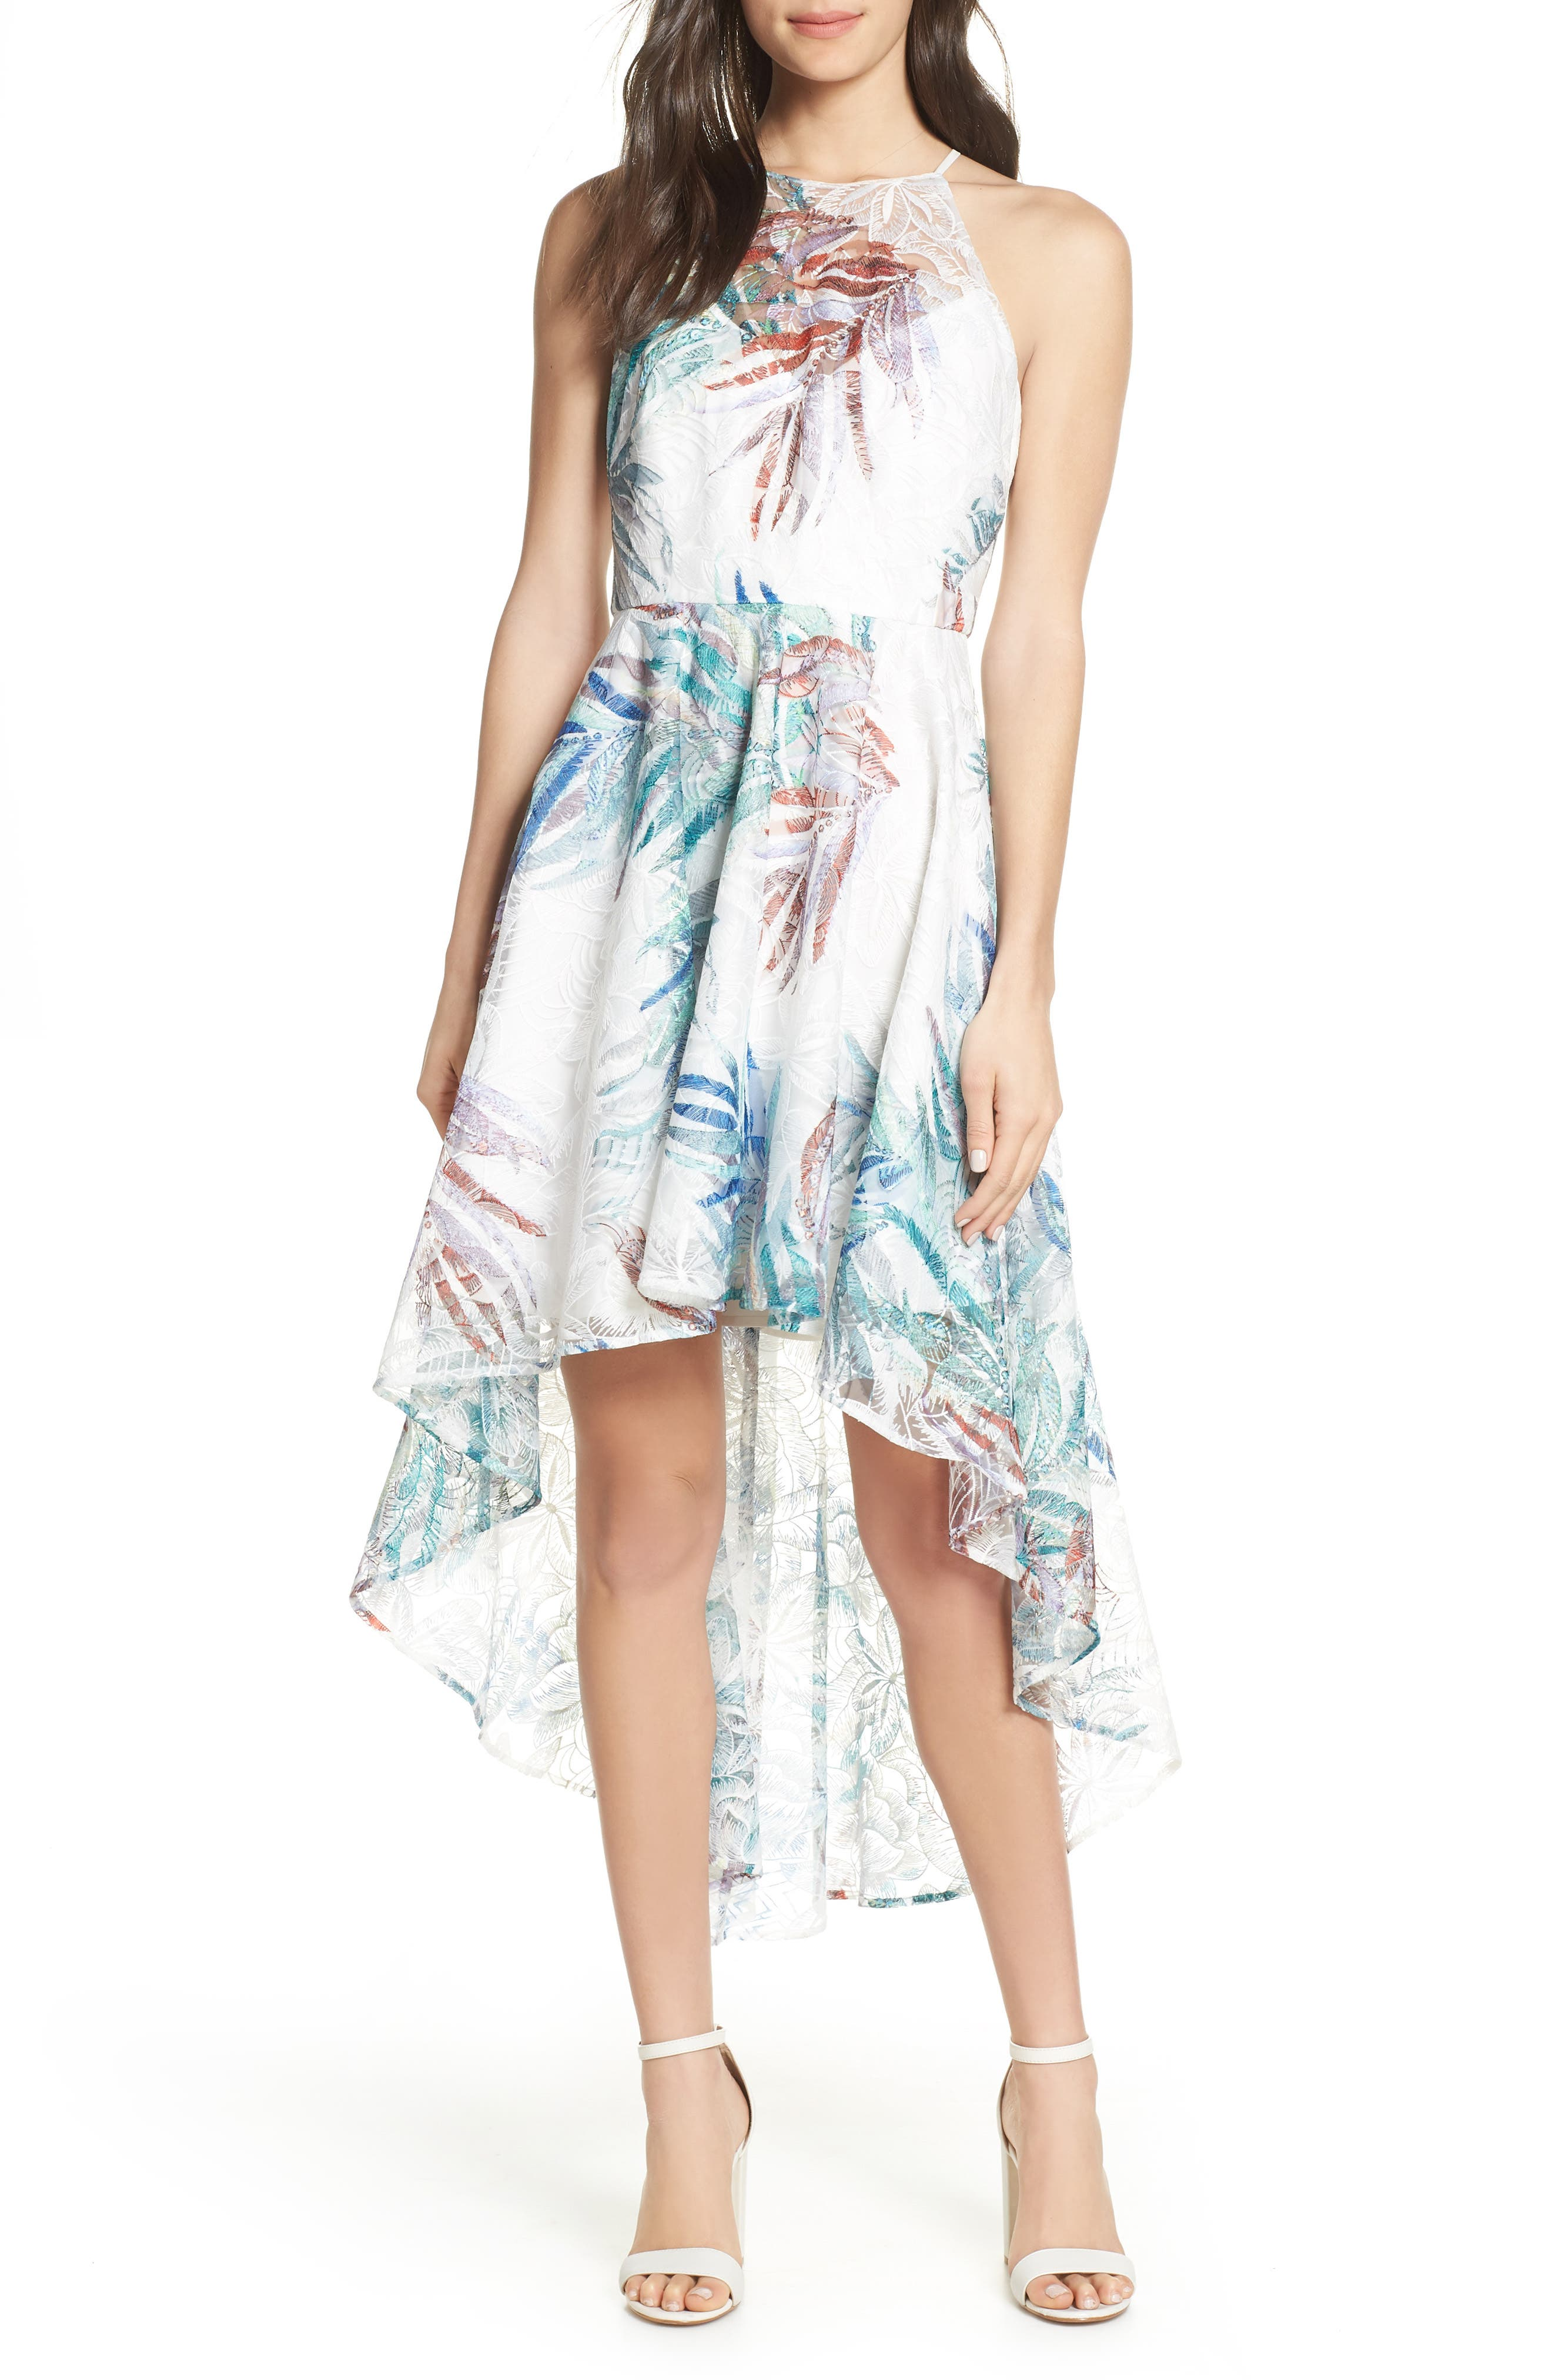 Mark + James By Badgley Mischka Leaf Embroidered High/low Dress, White